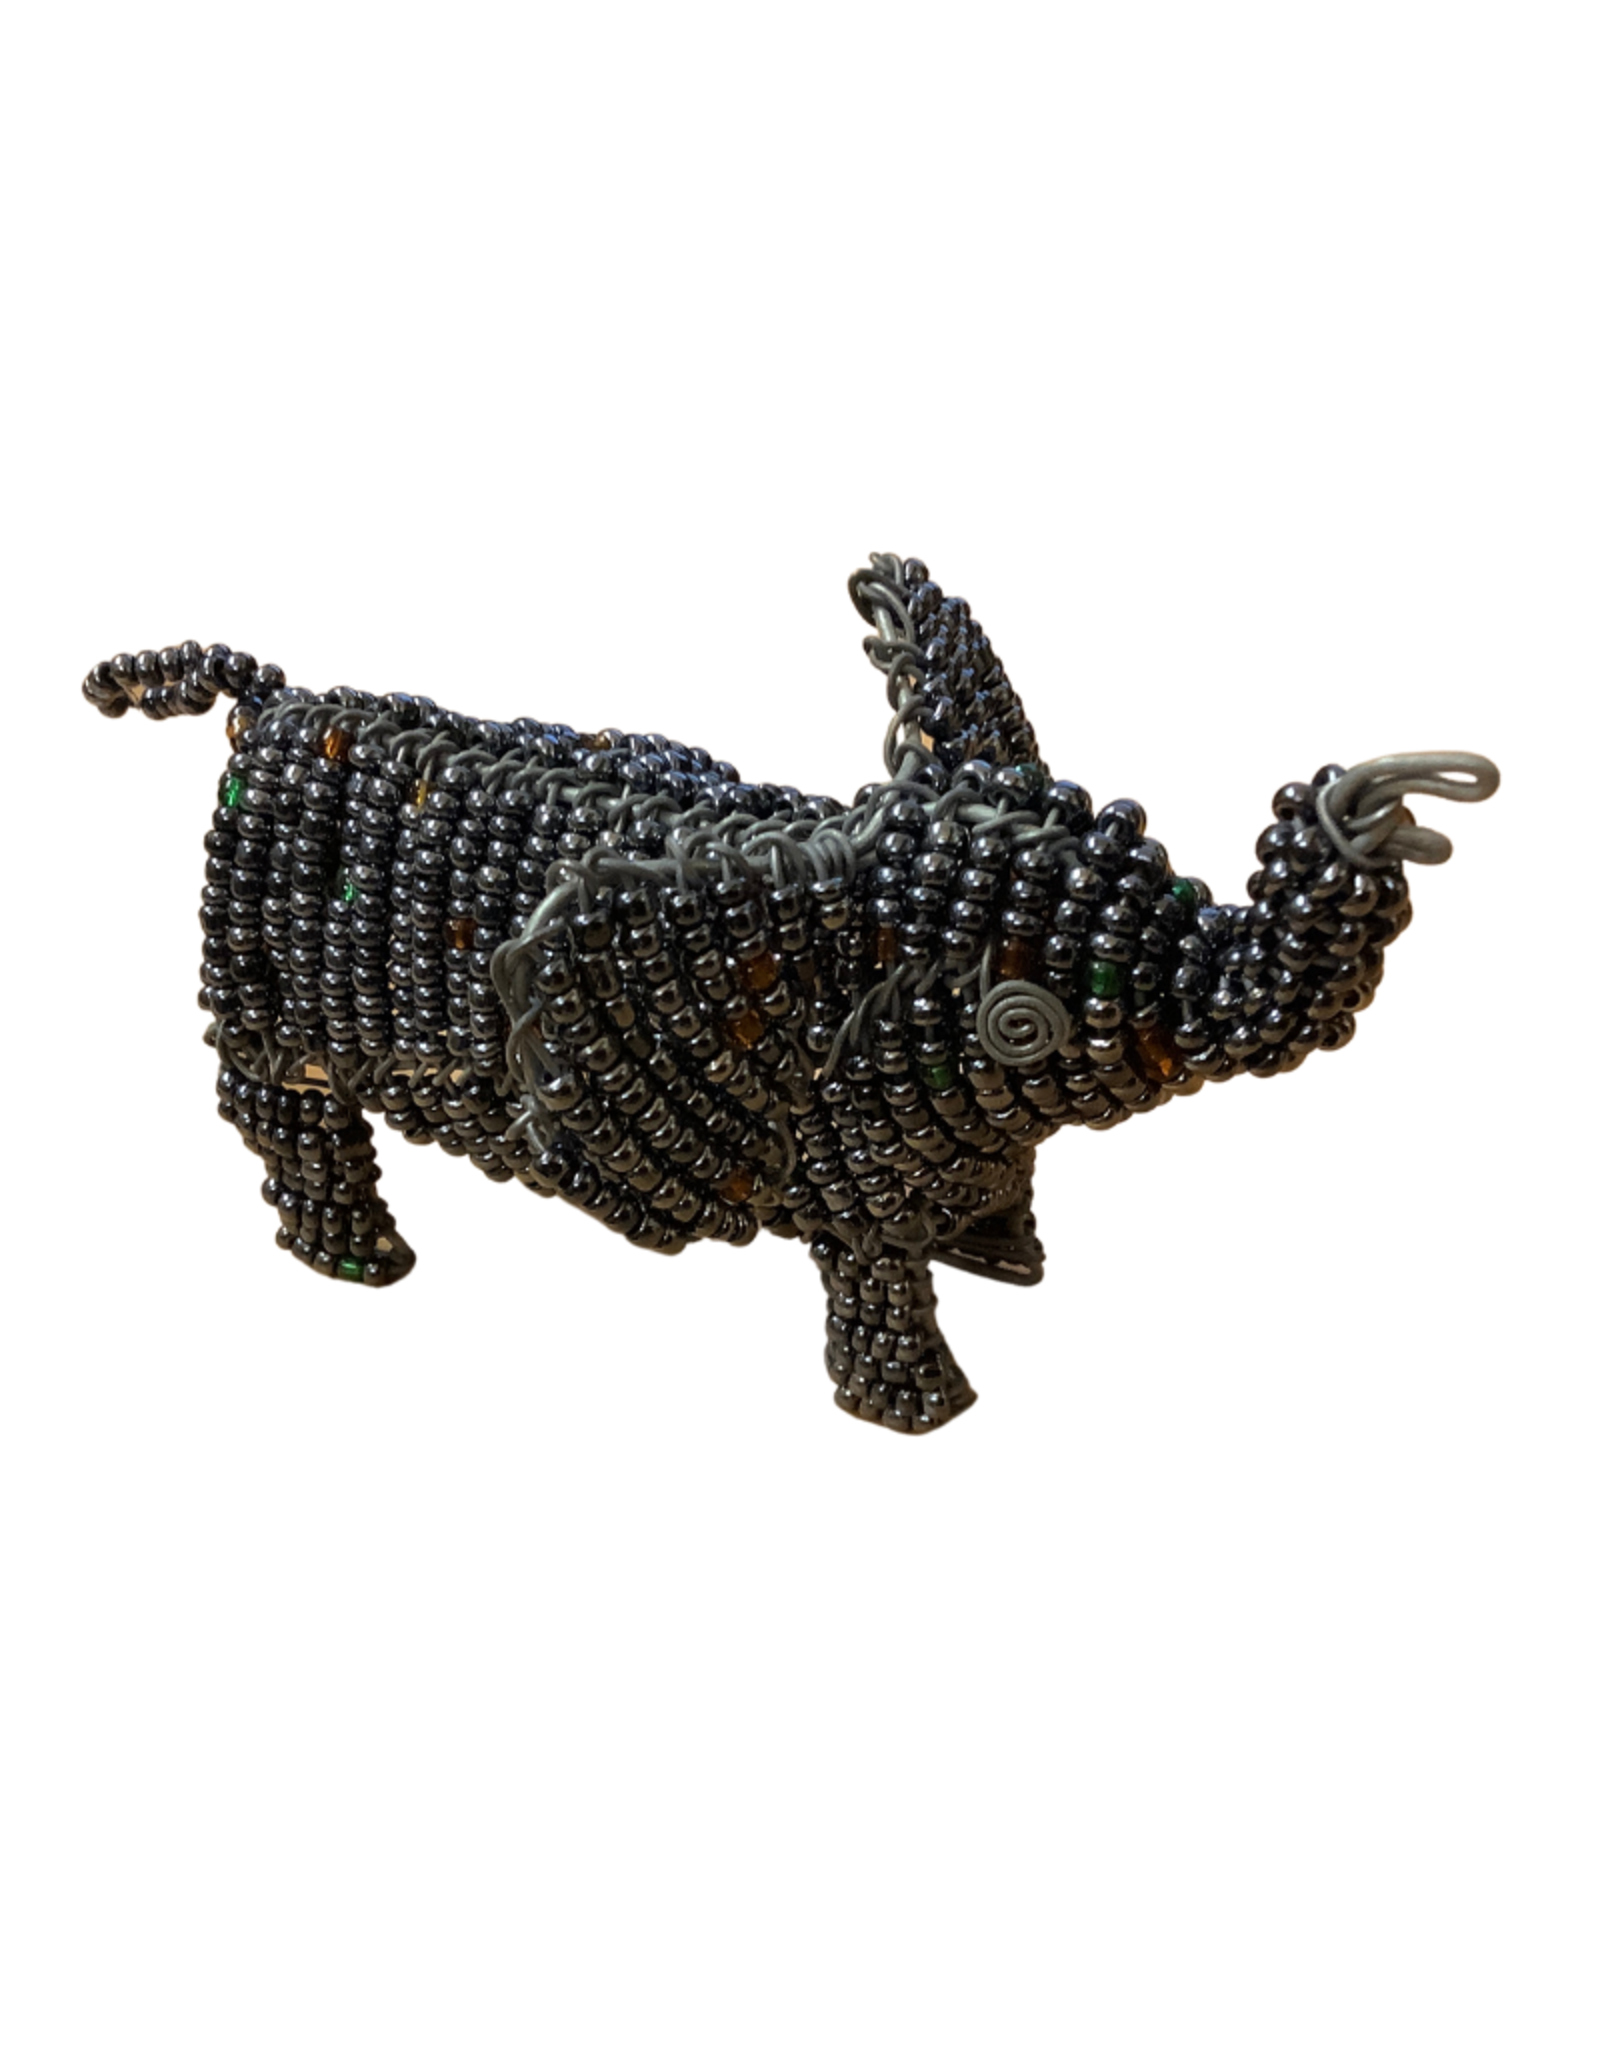 Beaded Elephant Sculpture (small)